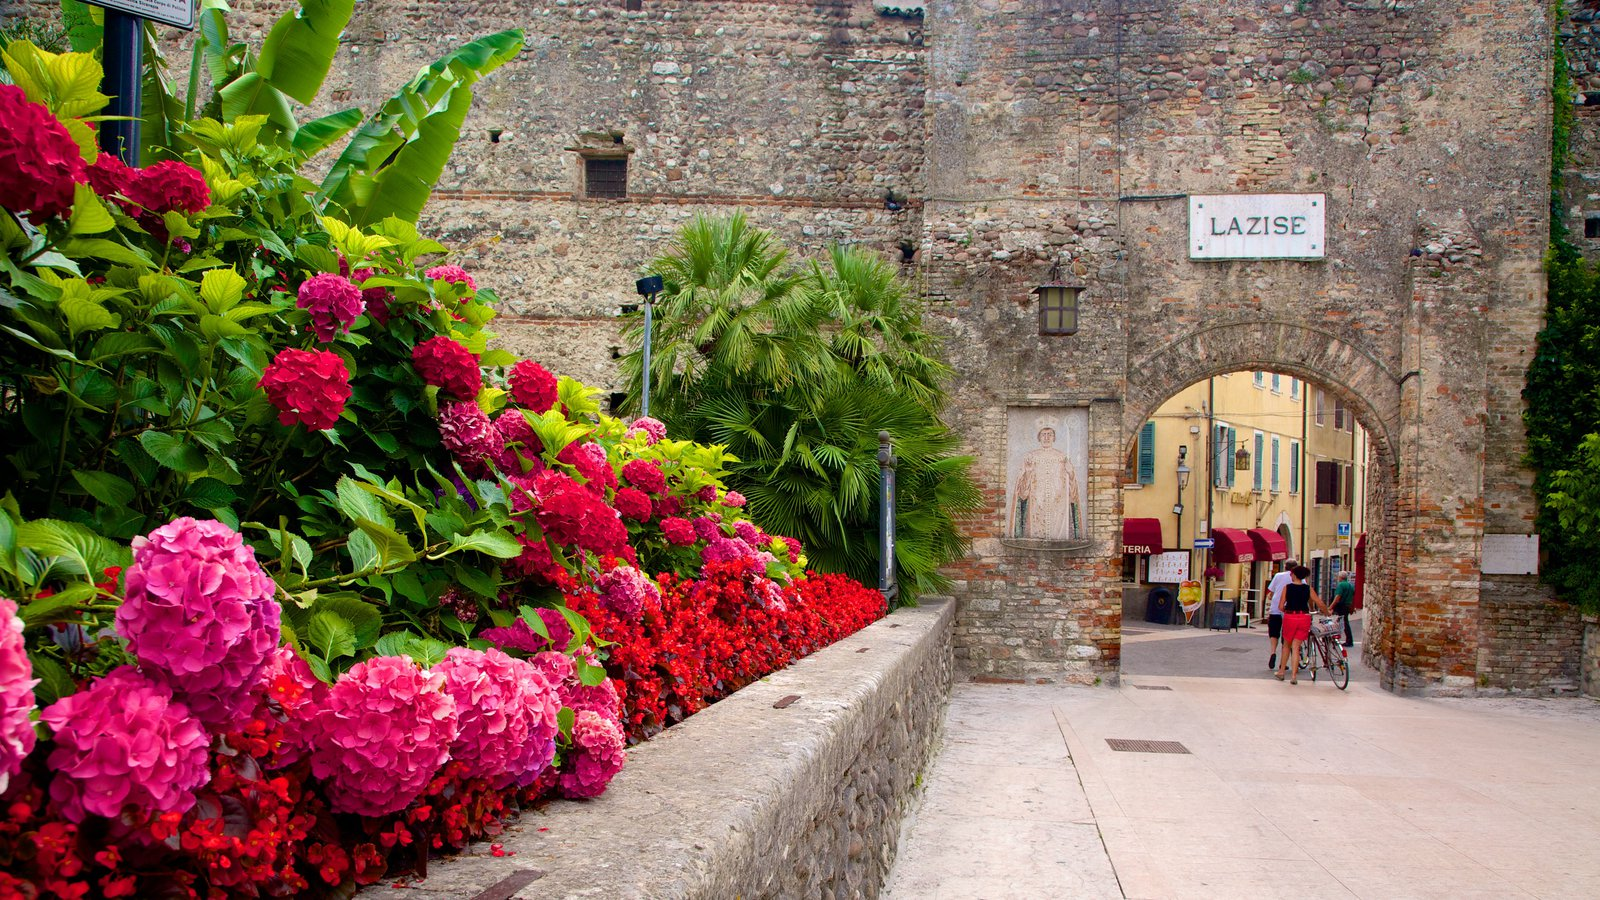 Lazise featuring heritage architecture and flowers